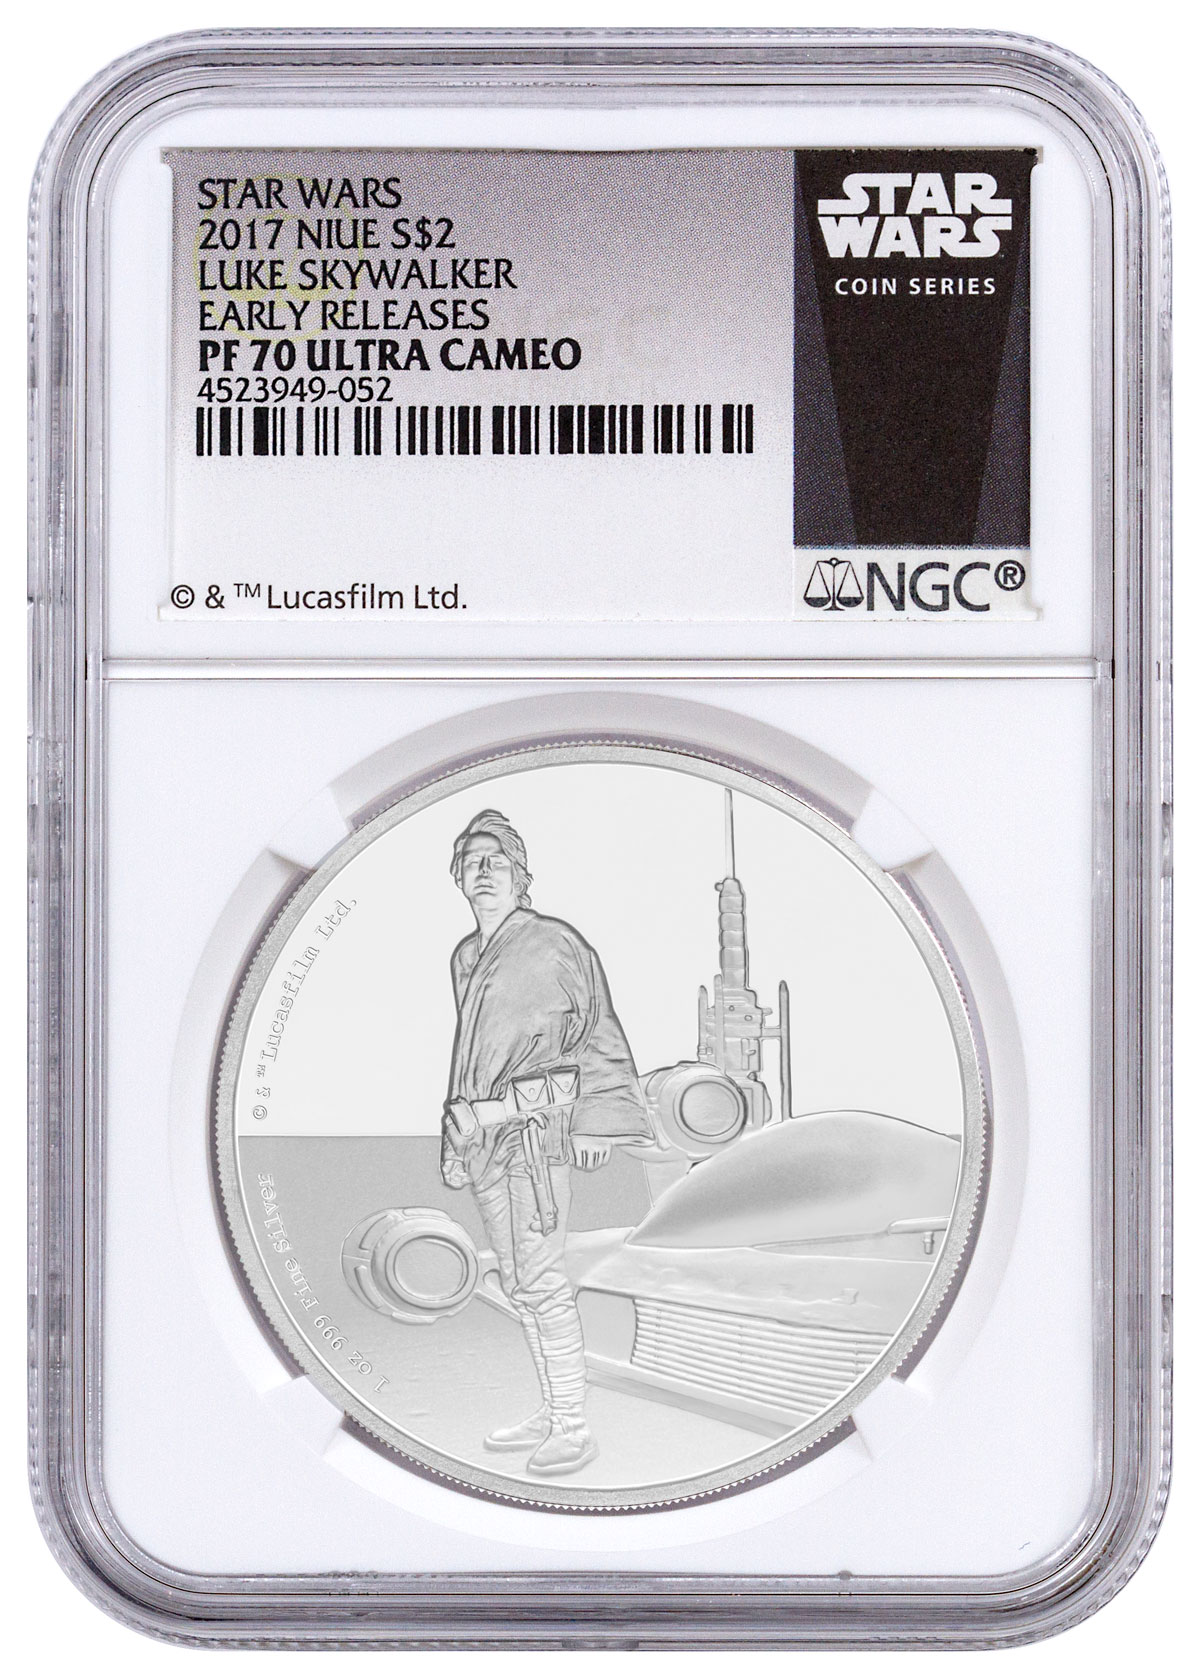 2017 Niue Star Wars Classic - Luke Skywalker 1 oz Silver Proof $2 Coin NGC PF70 UC ER (Exclusive Star Wars Label)